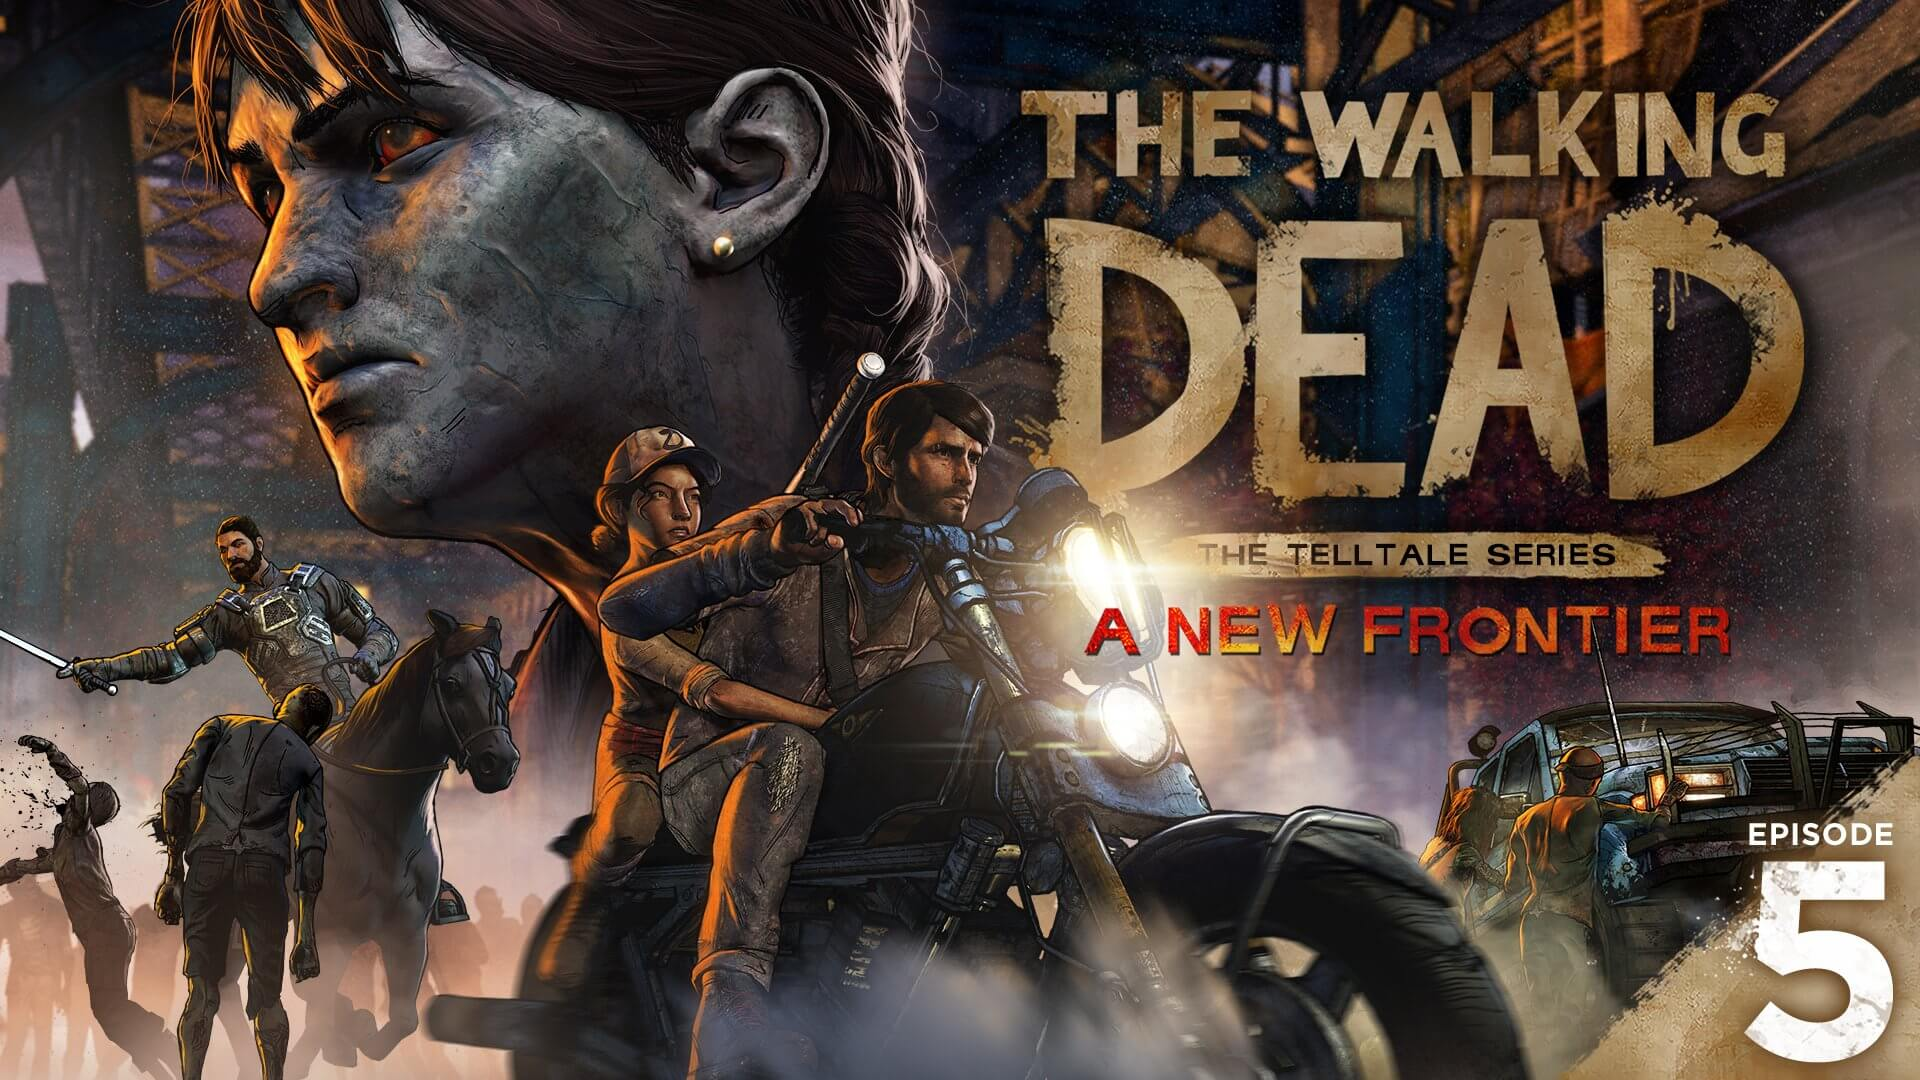 The Walking Dead: A New Frontier - Episode 5: From The Gallows Review